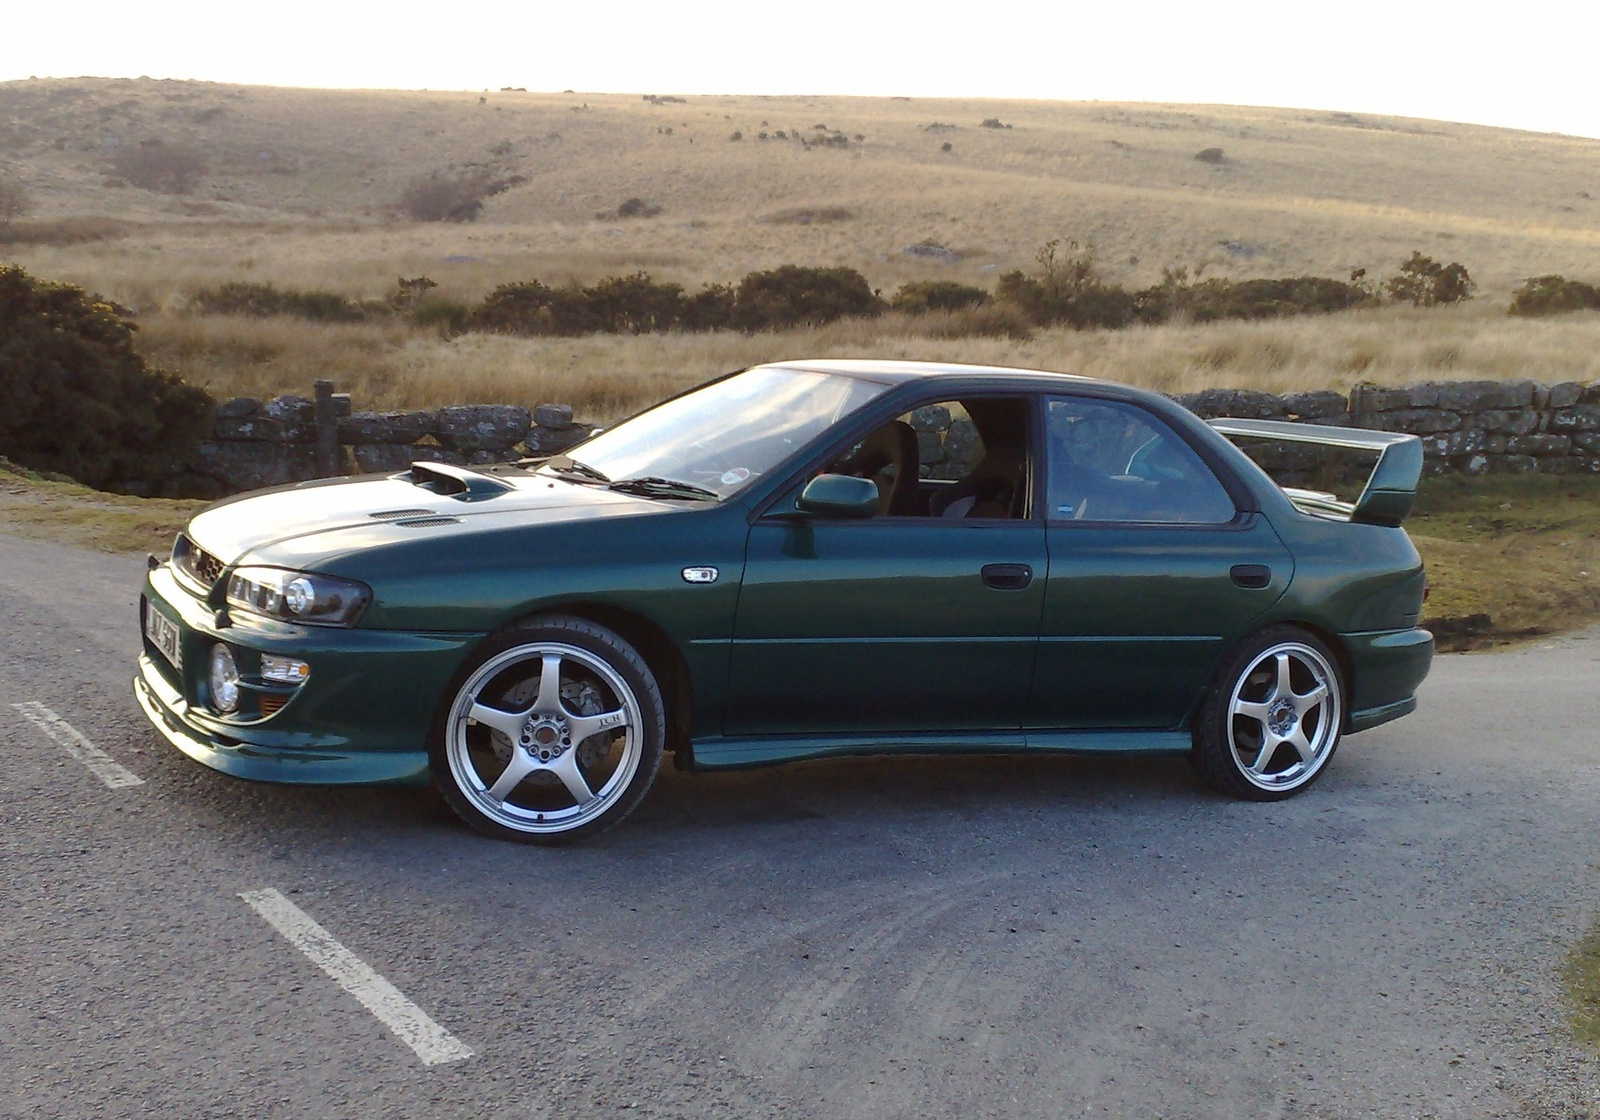 1999 Subaru Impreza 4 Dr L AWD Sedan picture